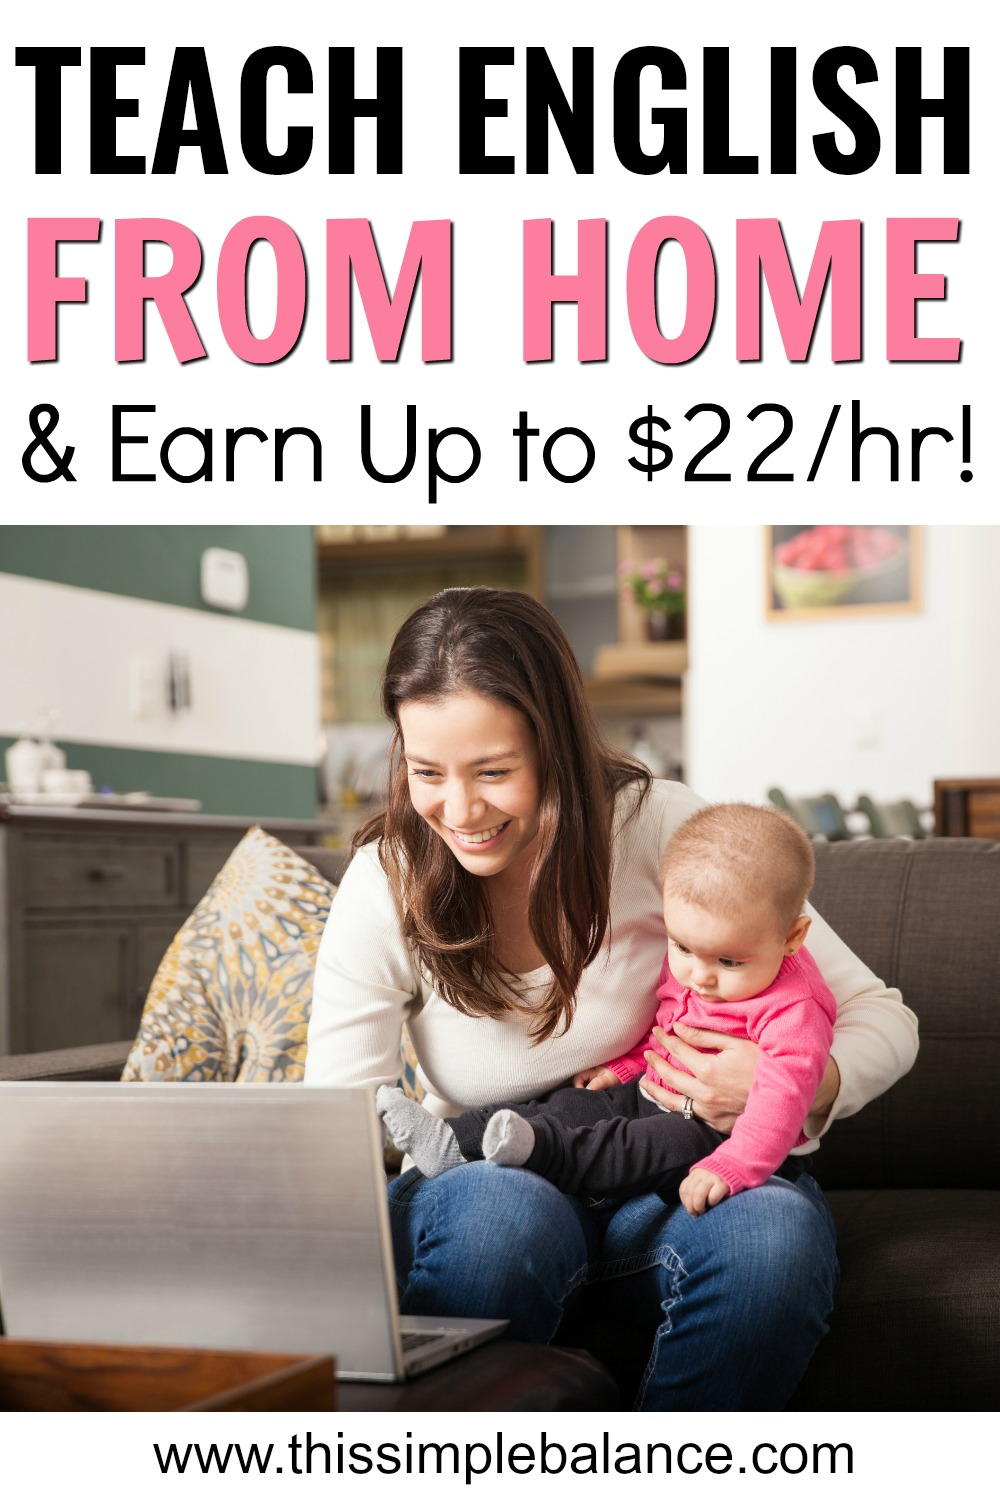 Need to Earn Extra Money From Home as a Stay at Home Mom? Make extra cash teaching English online! Completely flexible hours: perfect for moms needing to supplement household income.